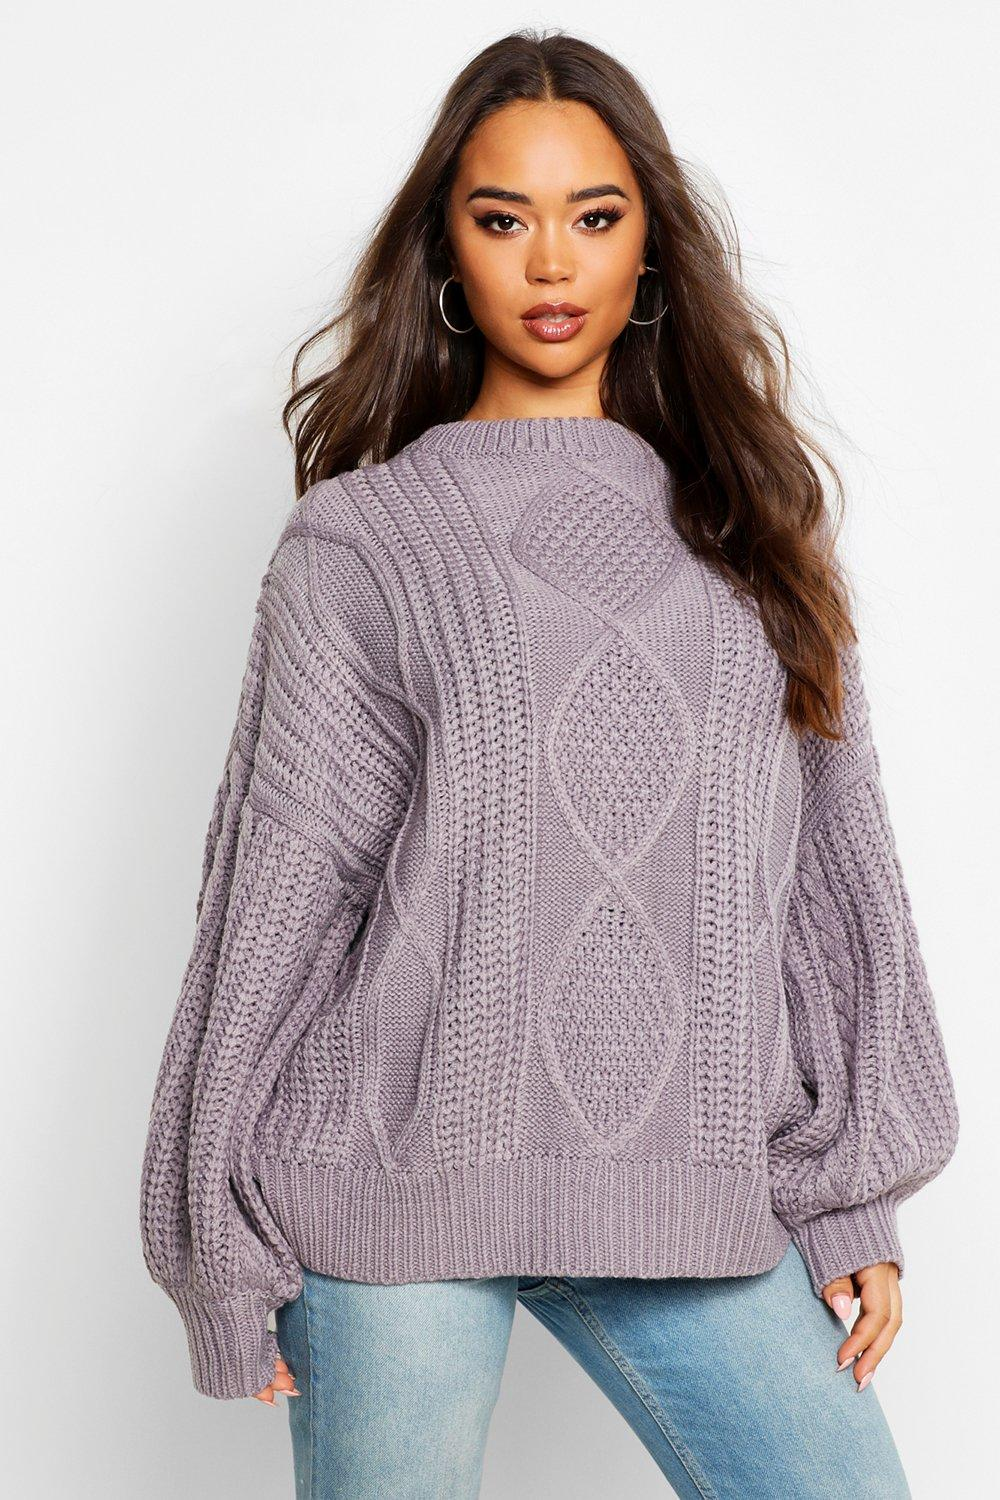 Womens Oversized Pullover mit Zopfmuster - anthrazit - S/M, Anthrazit - Boohoo.com